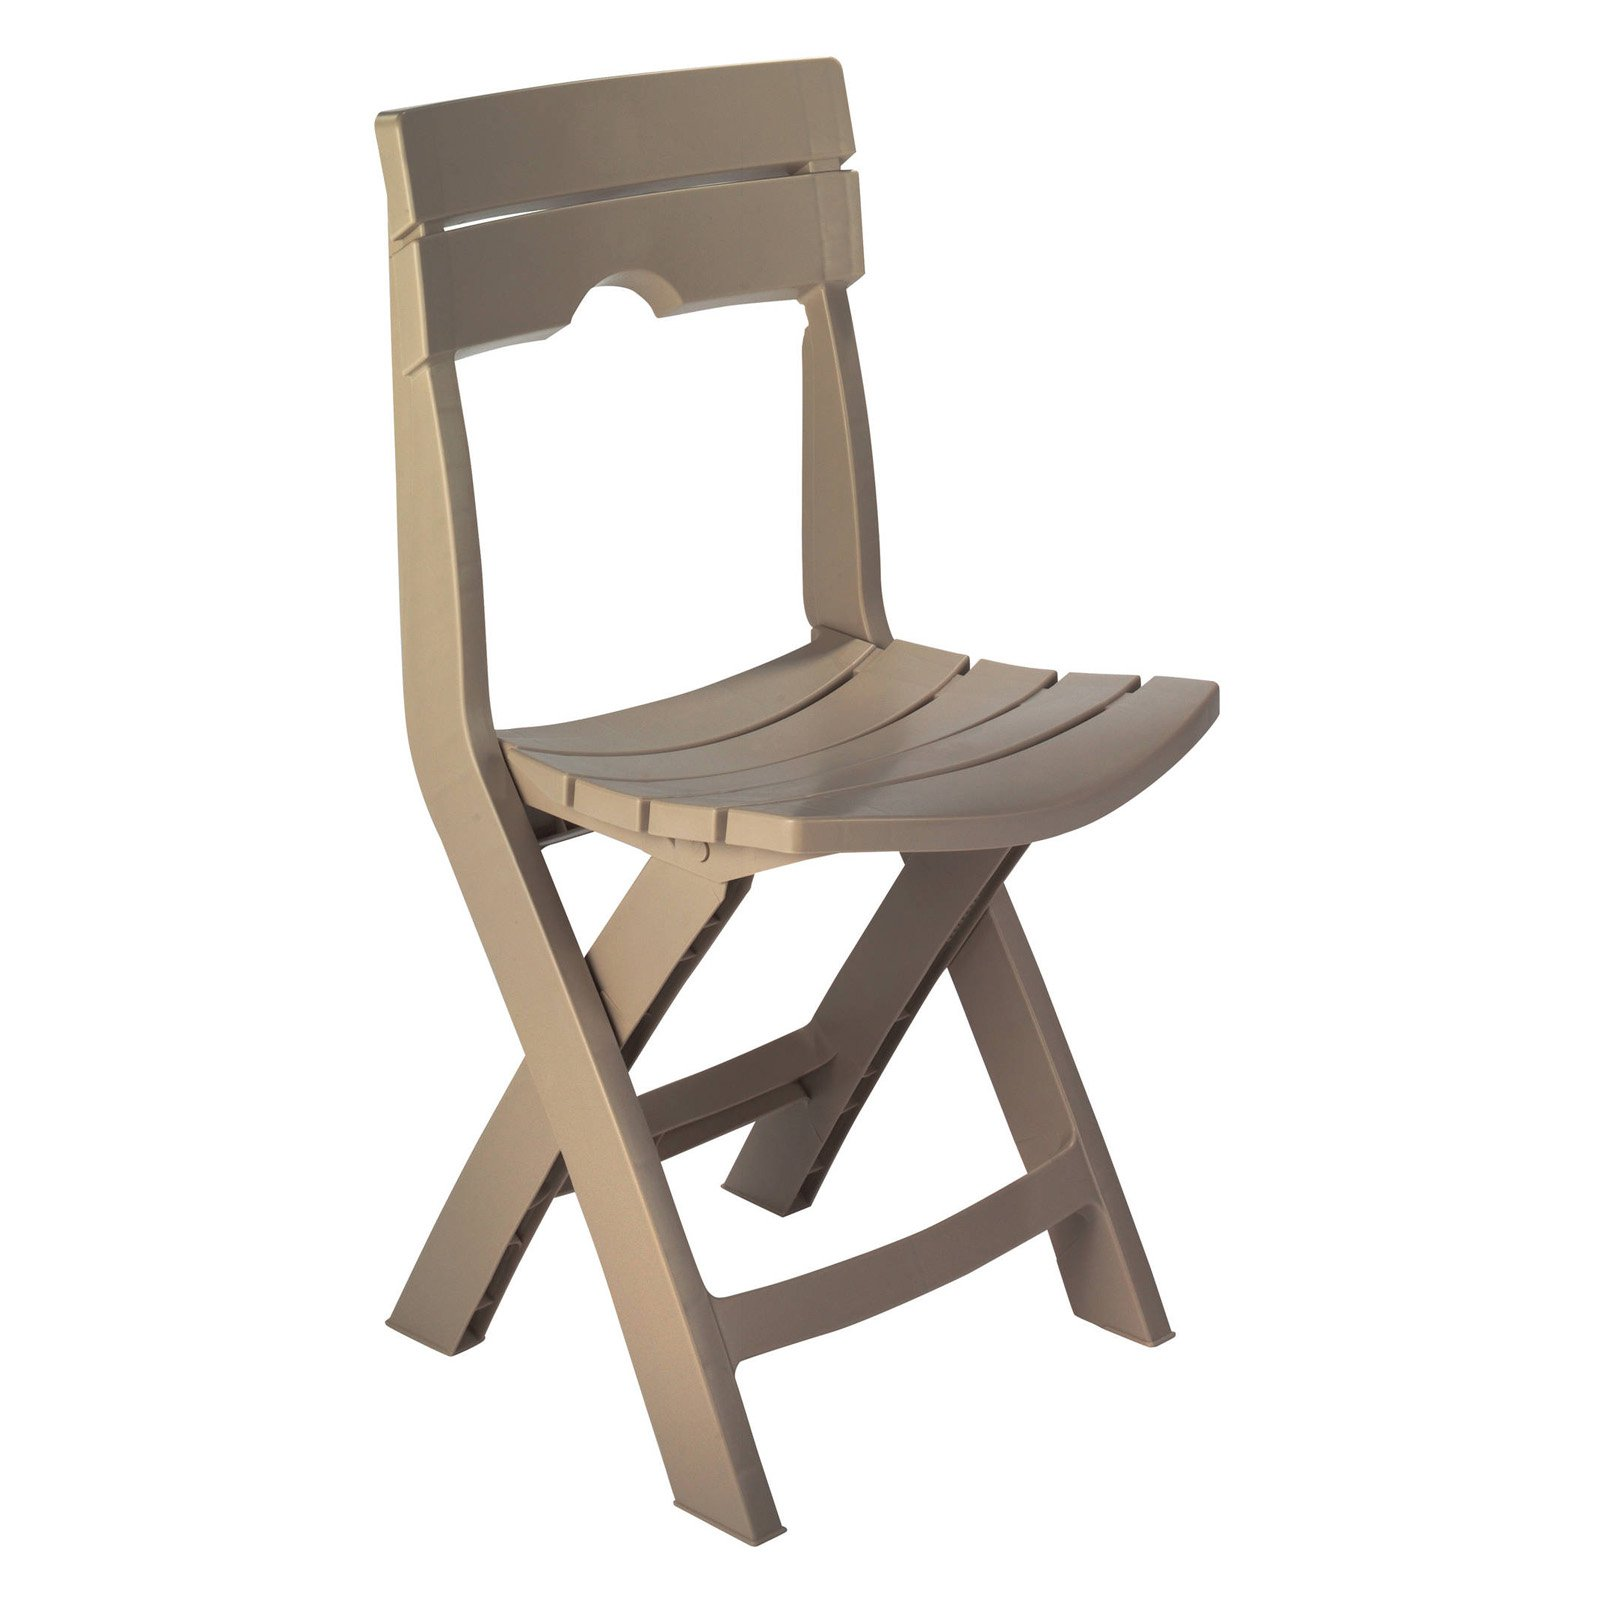 Adams Manufacturing Resin Quik-Fold Chair, Portobello